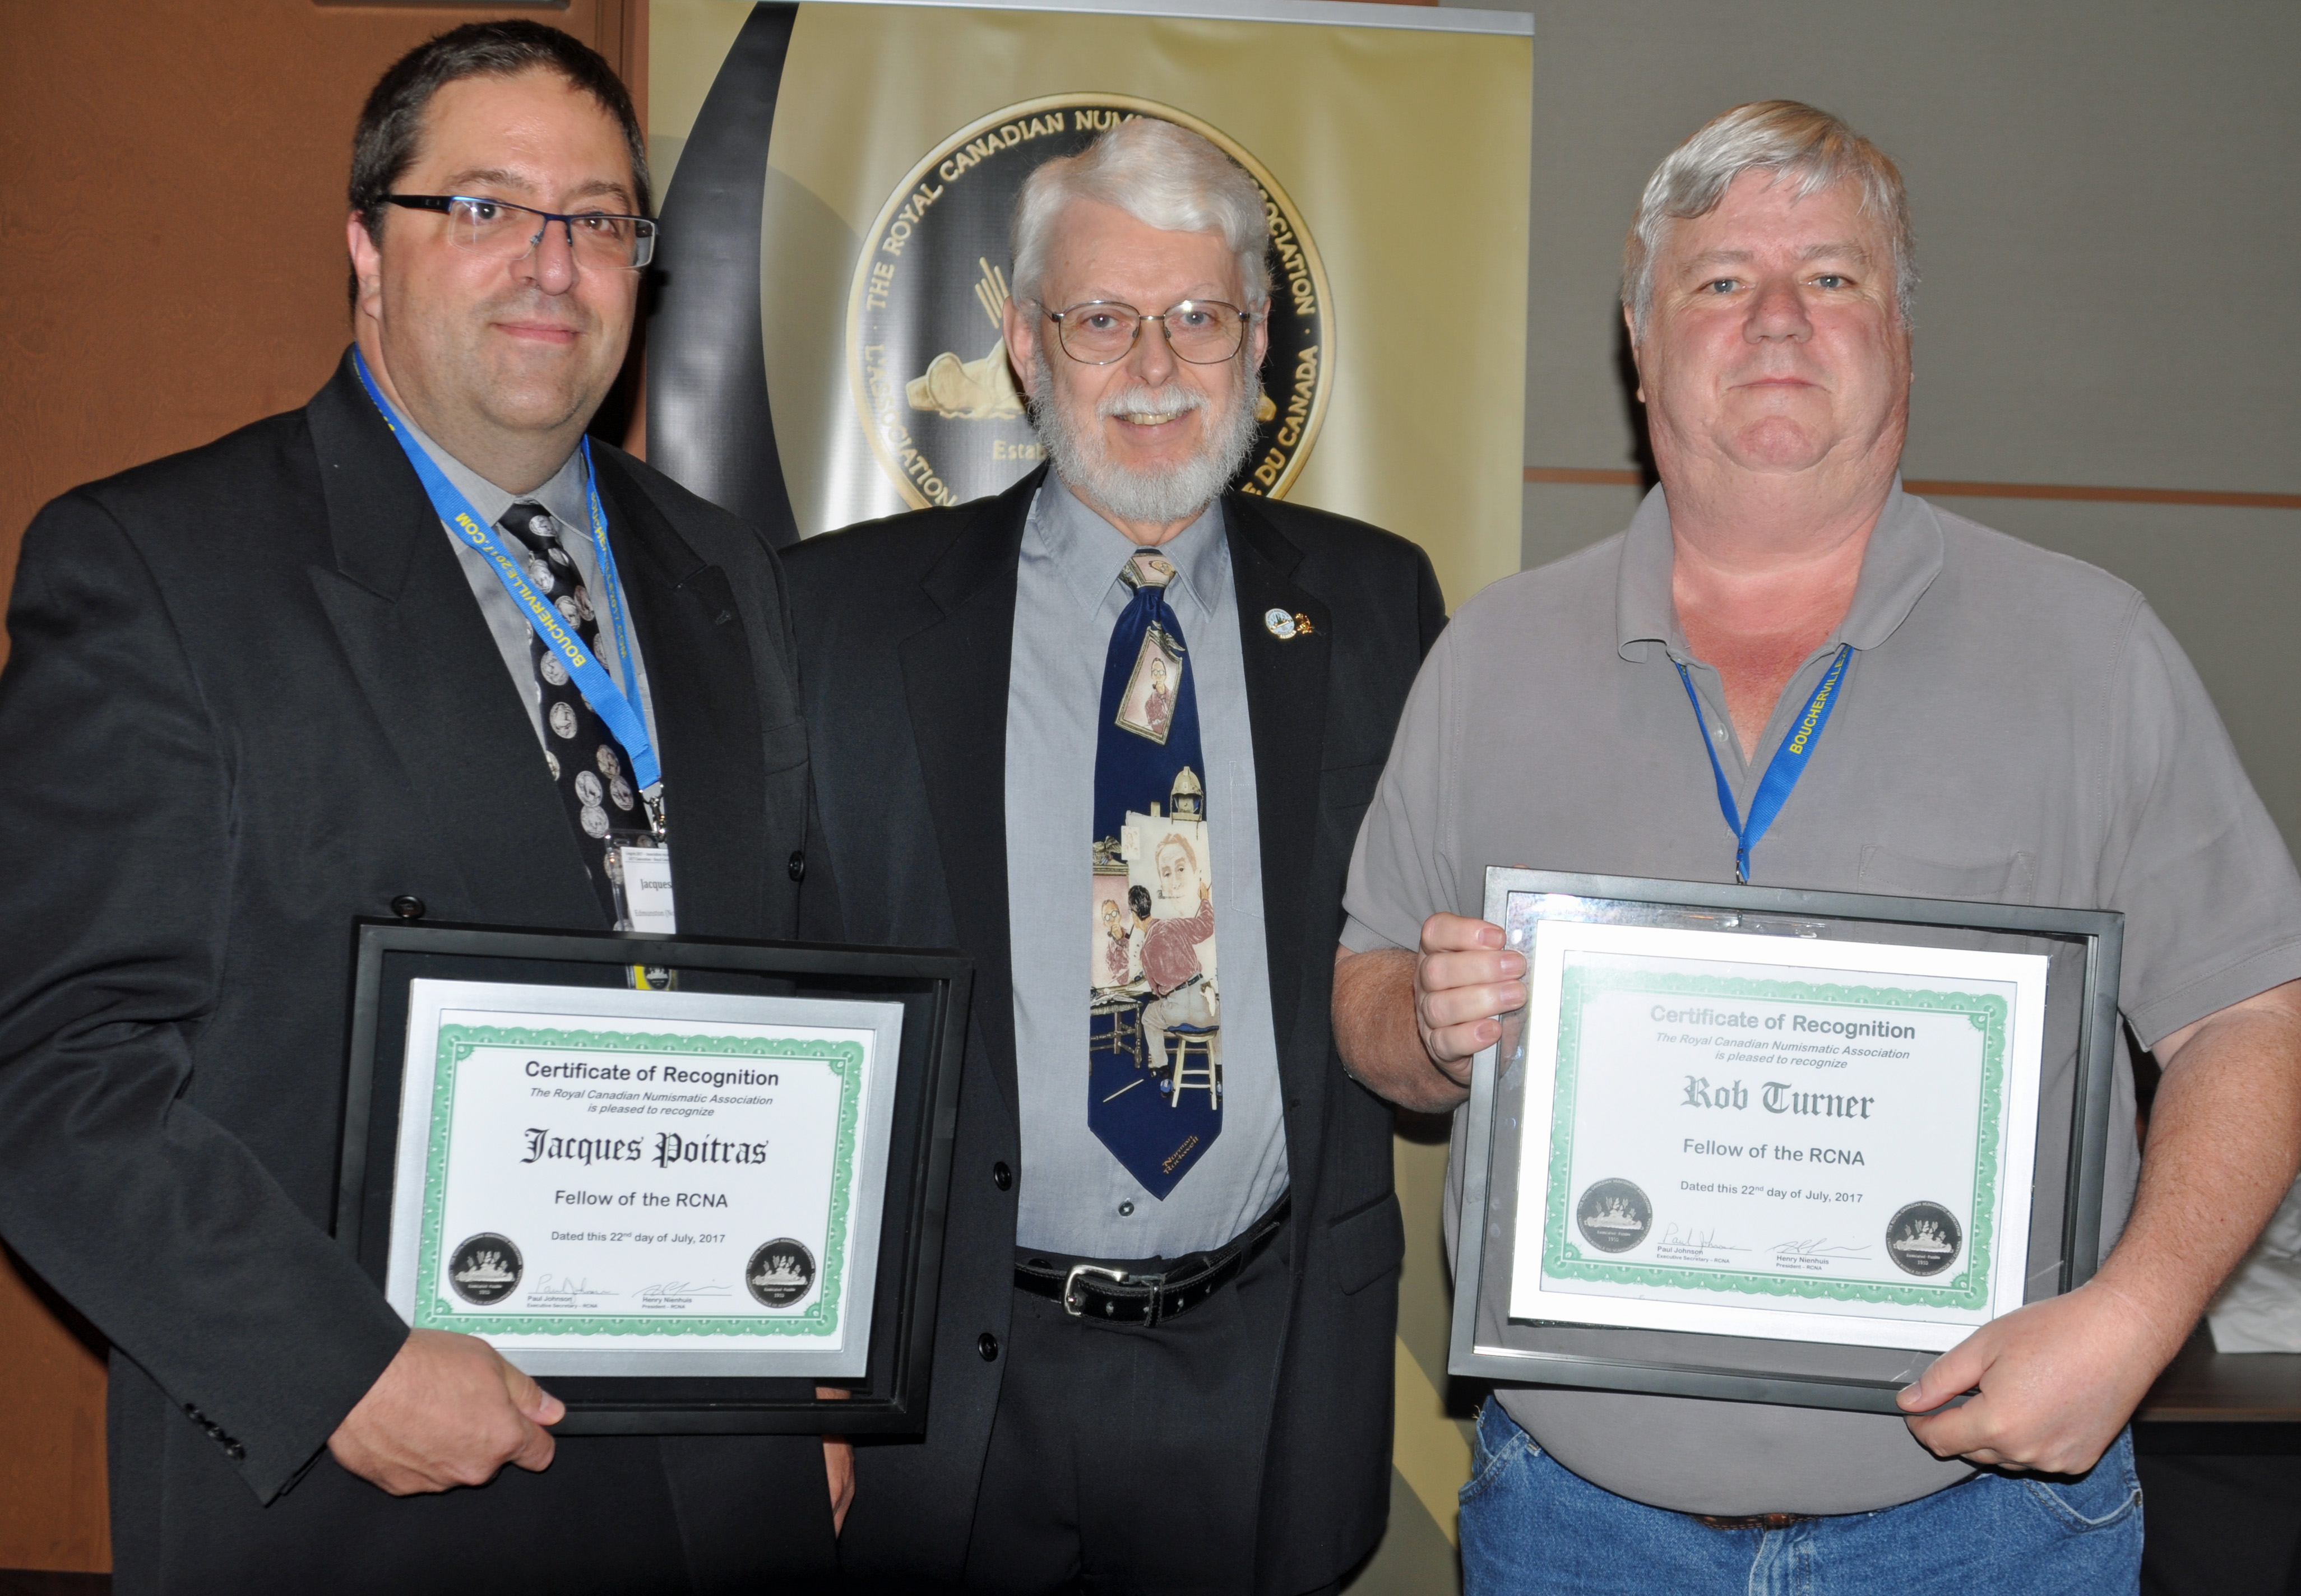 <p><strong>Jacques Poitras</strong> (left) and <strong>Rob Turner</strong> (right) receiving the Fellow Award from <strong>Paul Petch</strong> (center).</p>